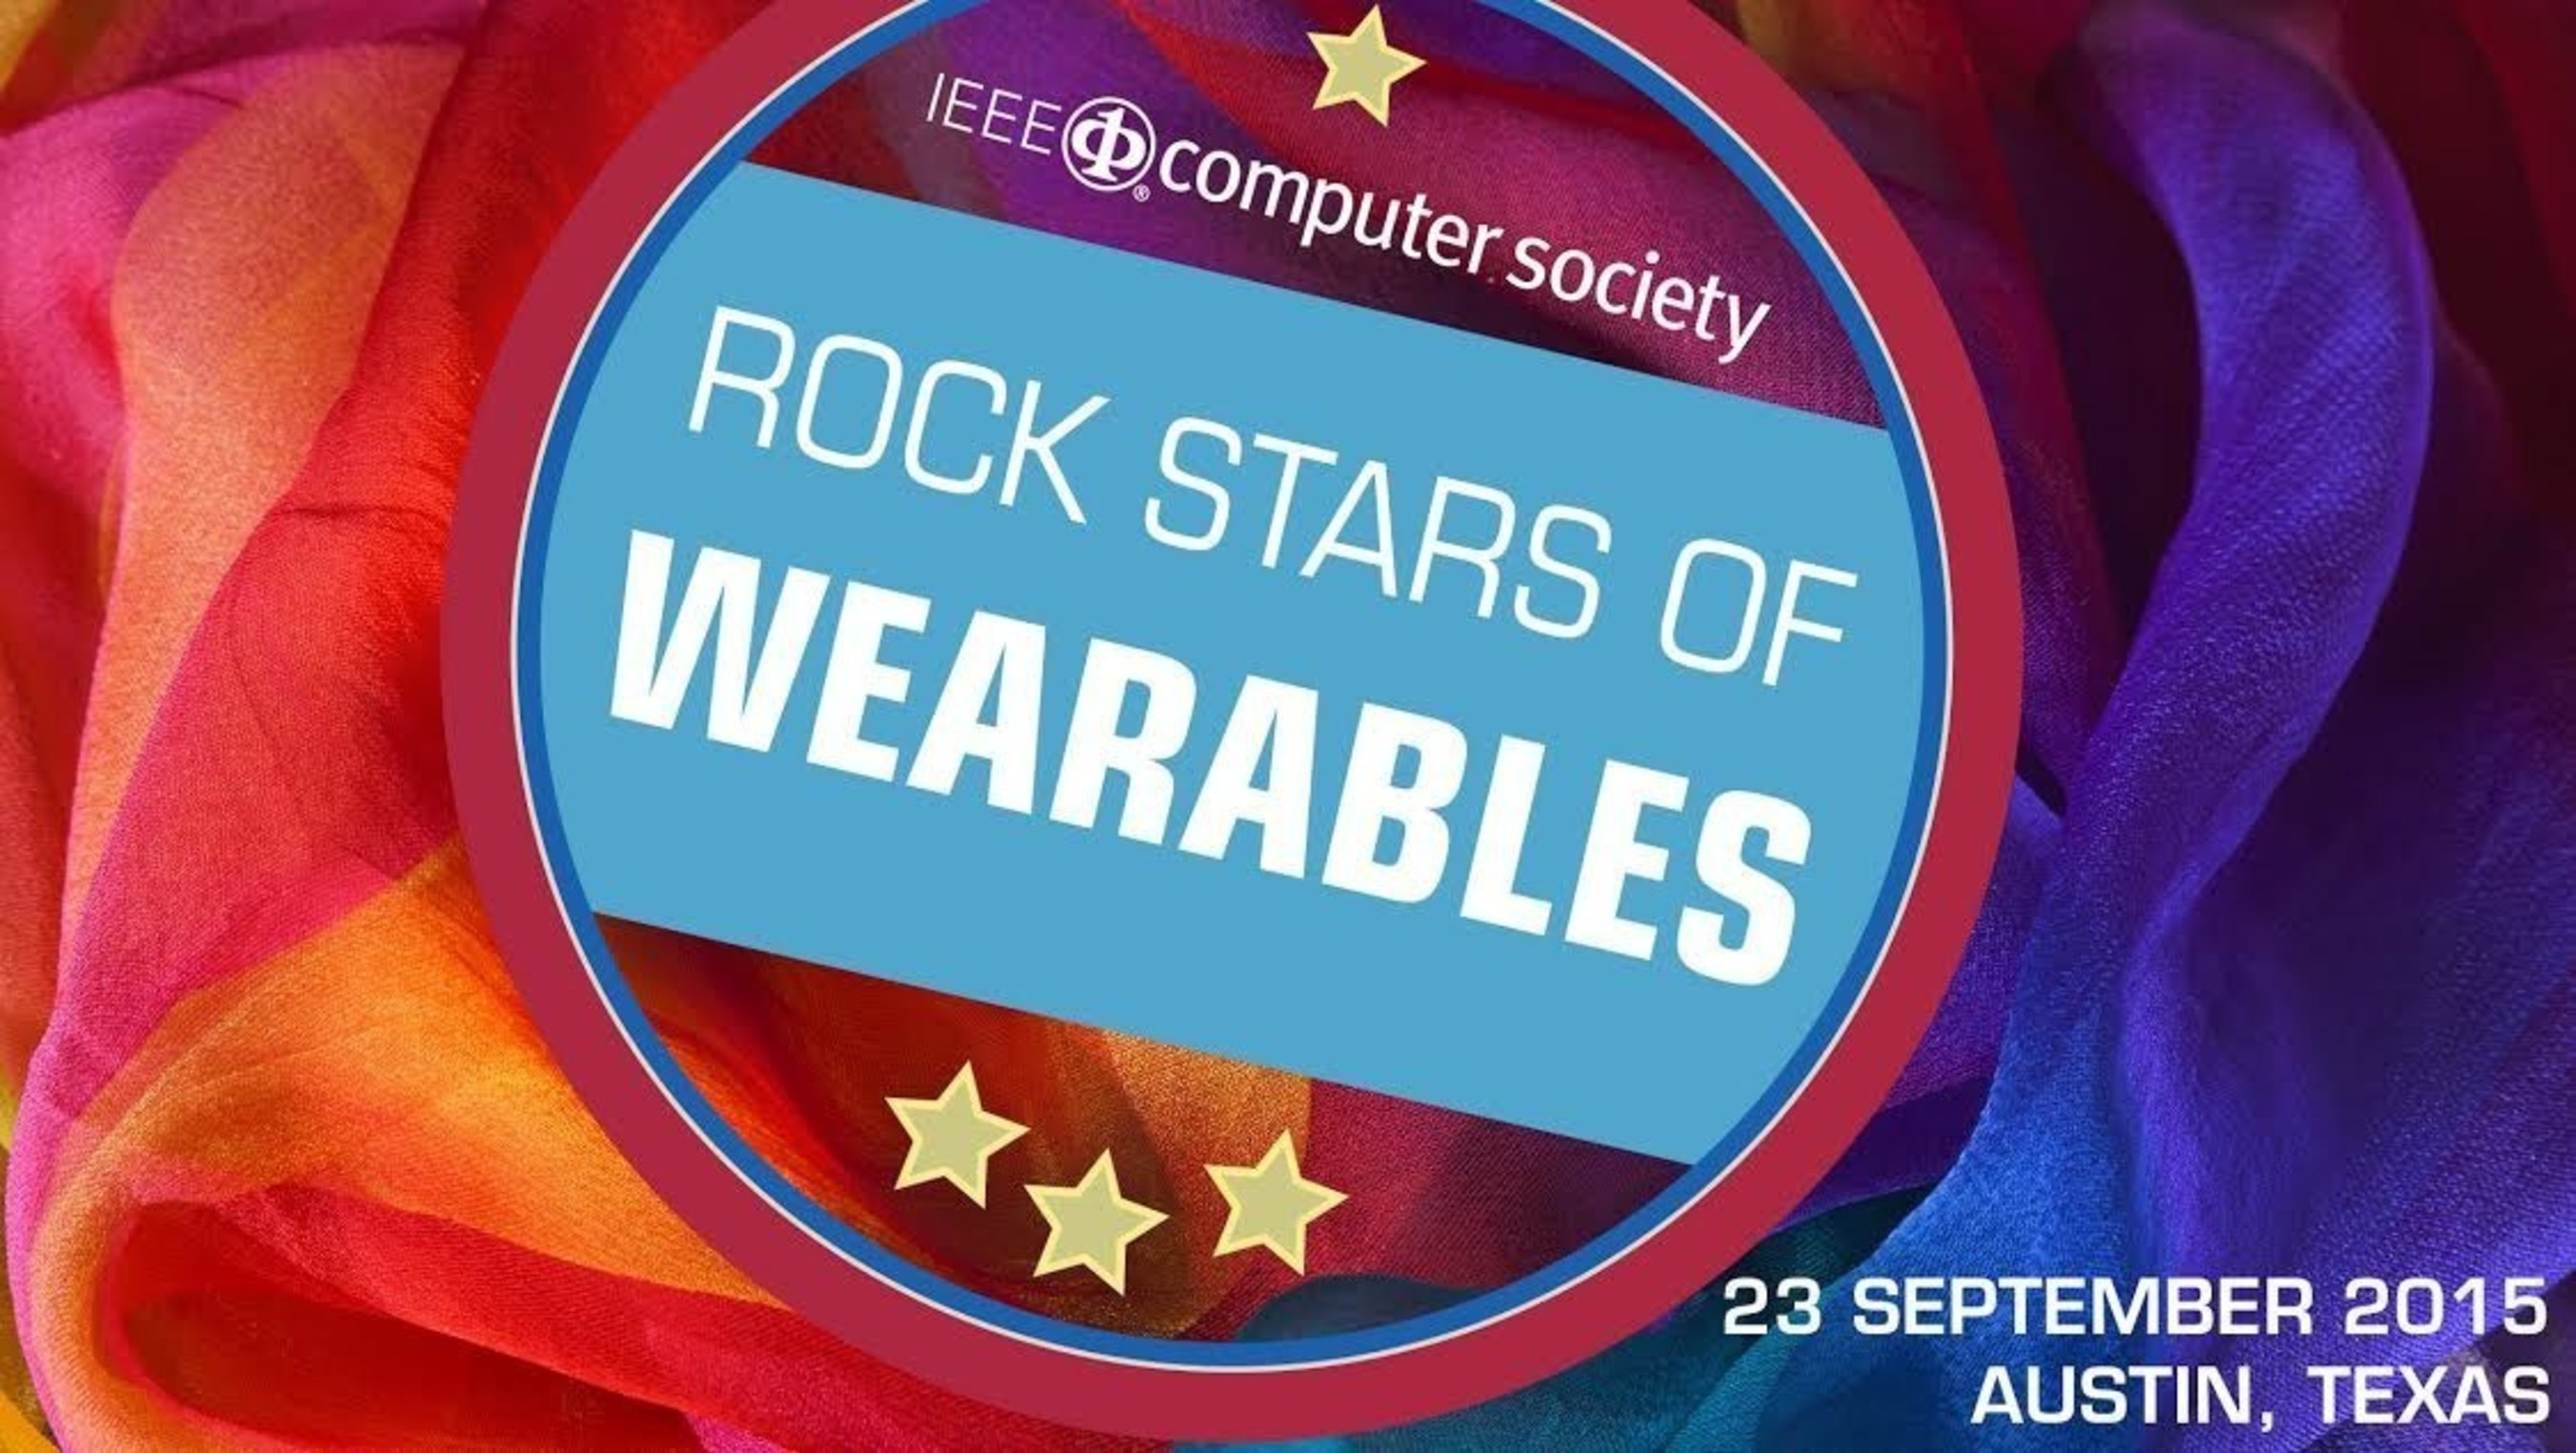 Registration Open for Rock Stars of Wearables, Sept. 23, Austin, Texas; Foremost Event on Wearables Addresses the Fast-Growing Future of Emerging Markets and Technologies